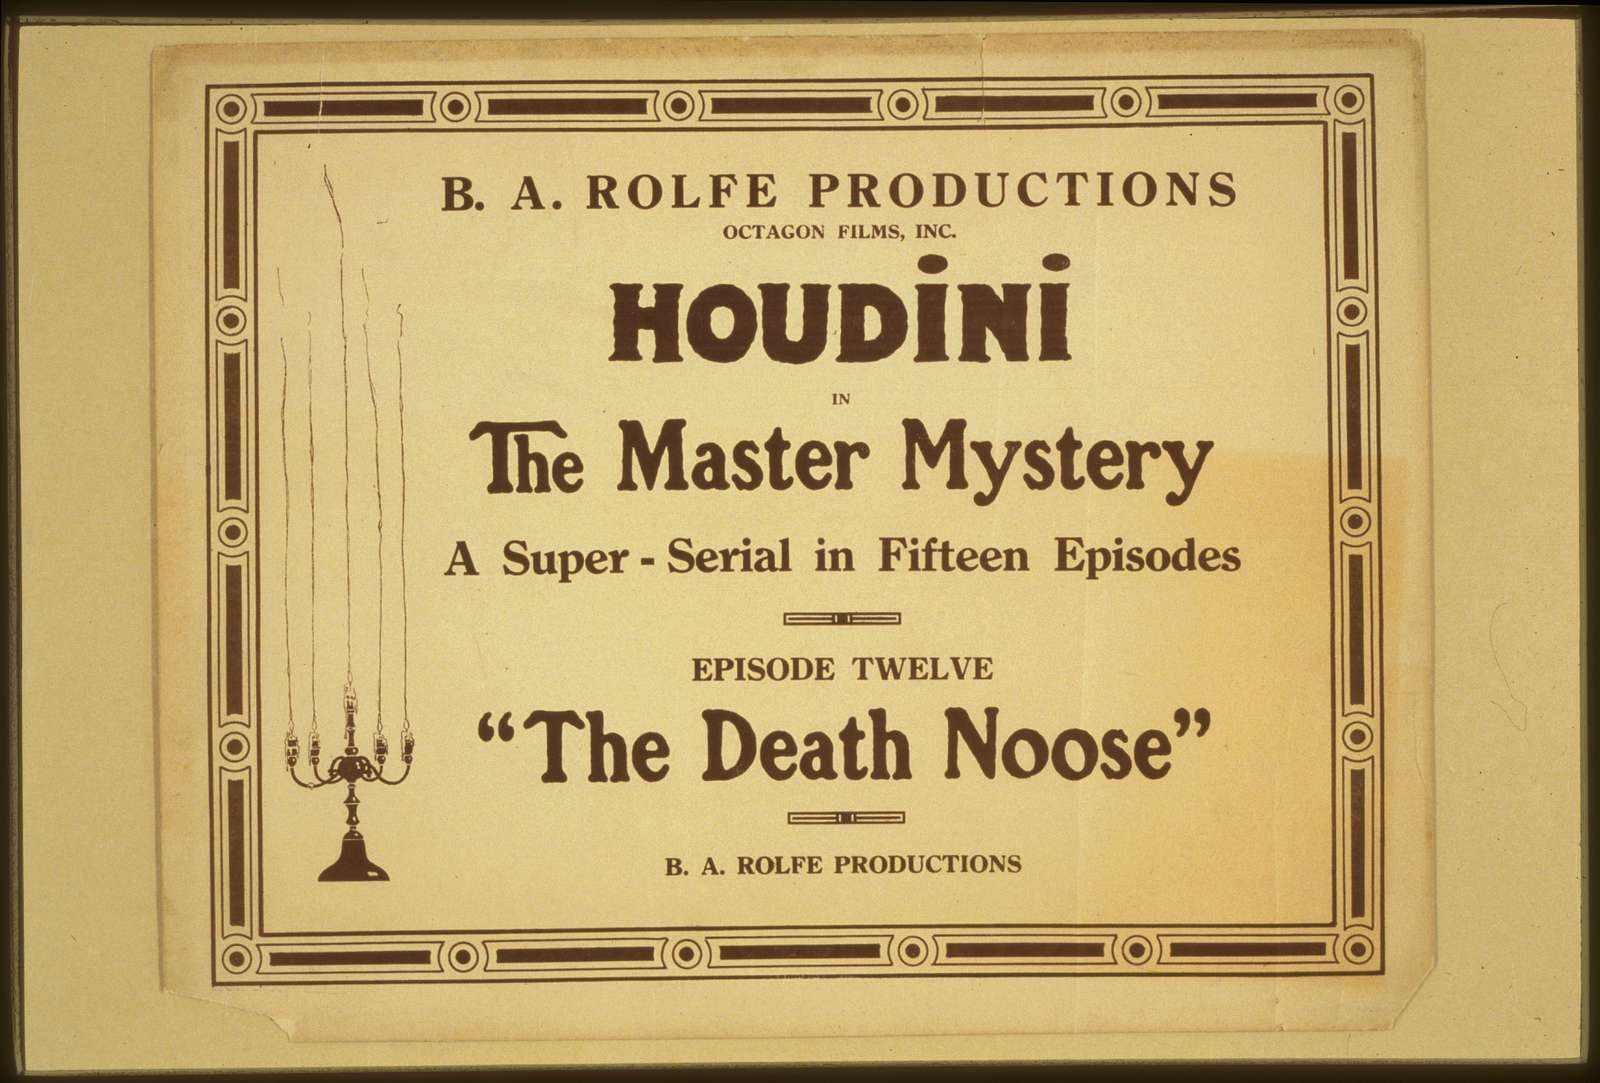 Houdini in The master mystery a super-serial in fifteen episodes.